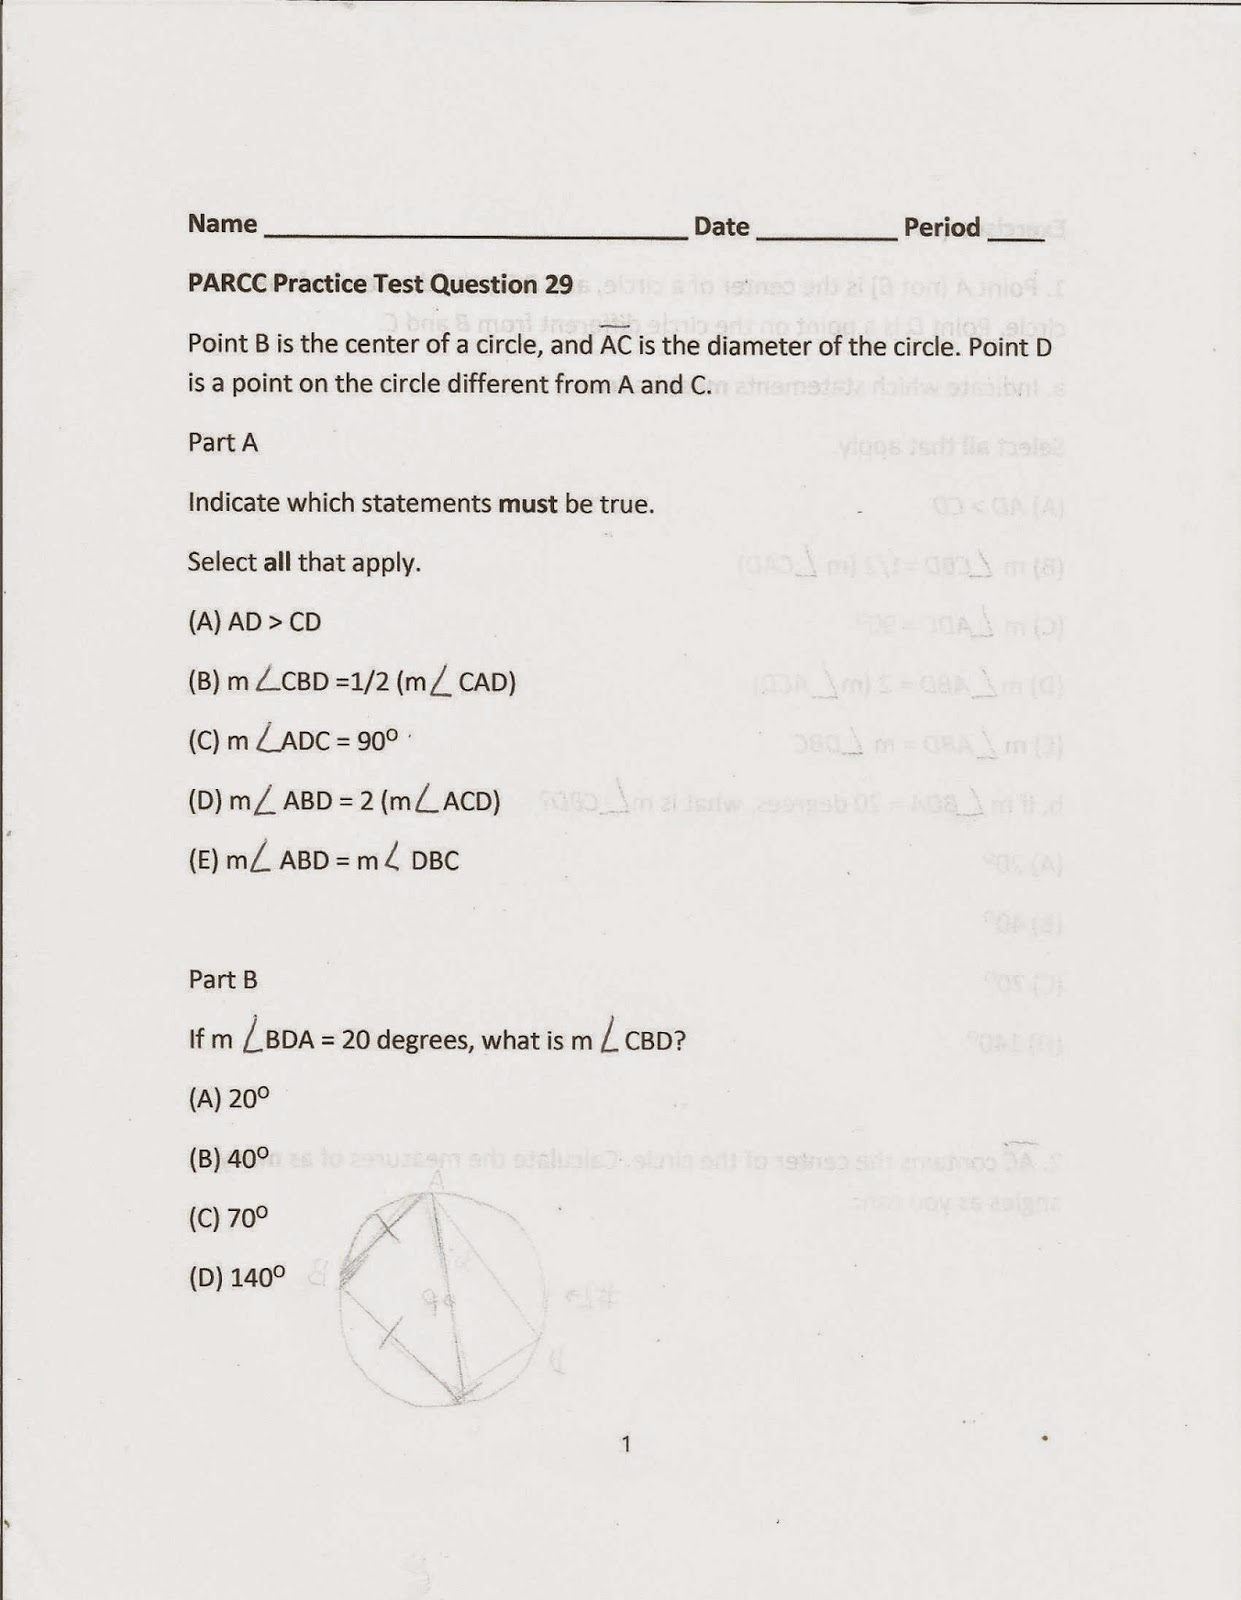 geometry common core style  in the spur section objective b including questions 7 through 11 are good questions to consider